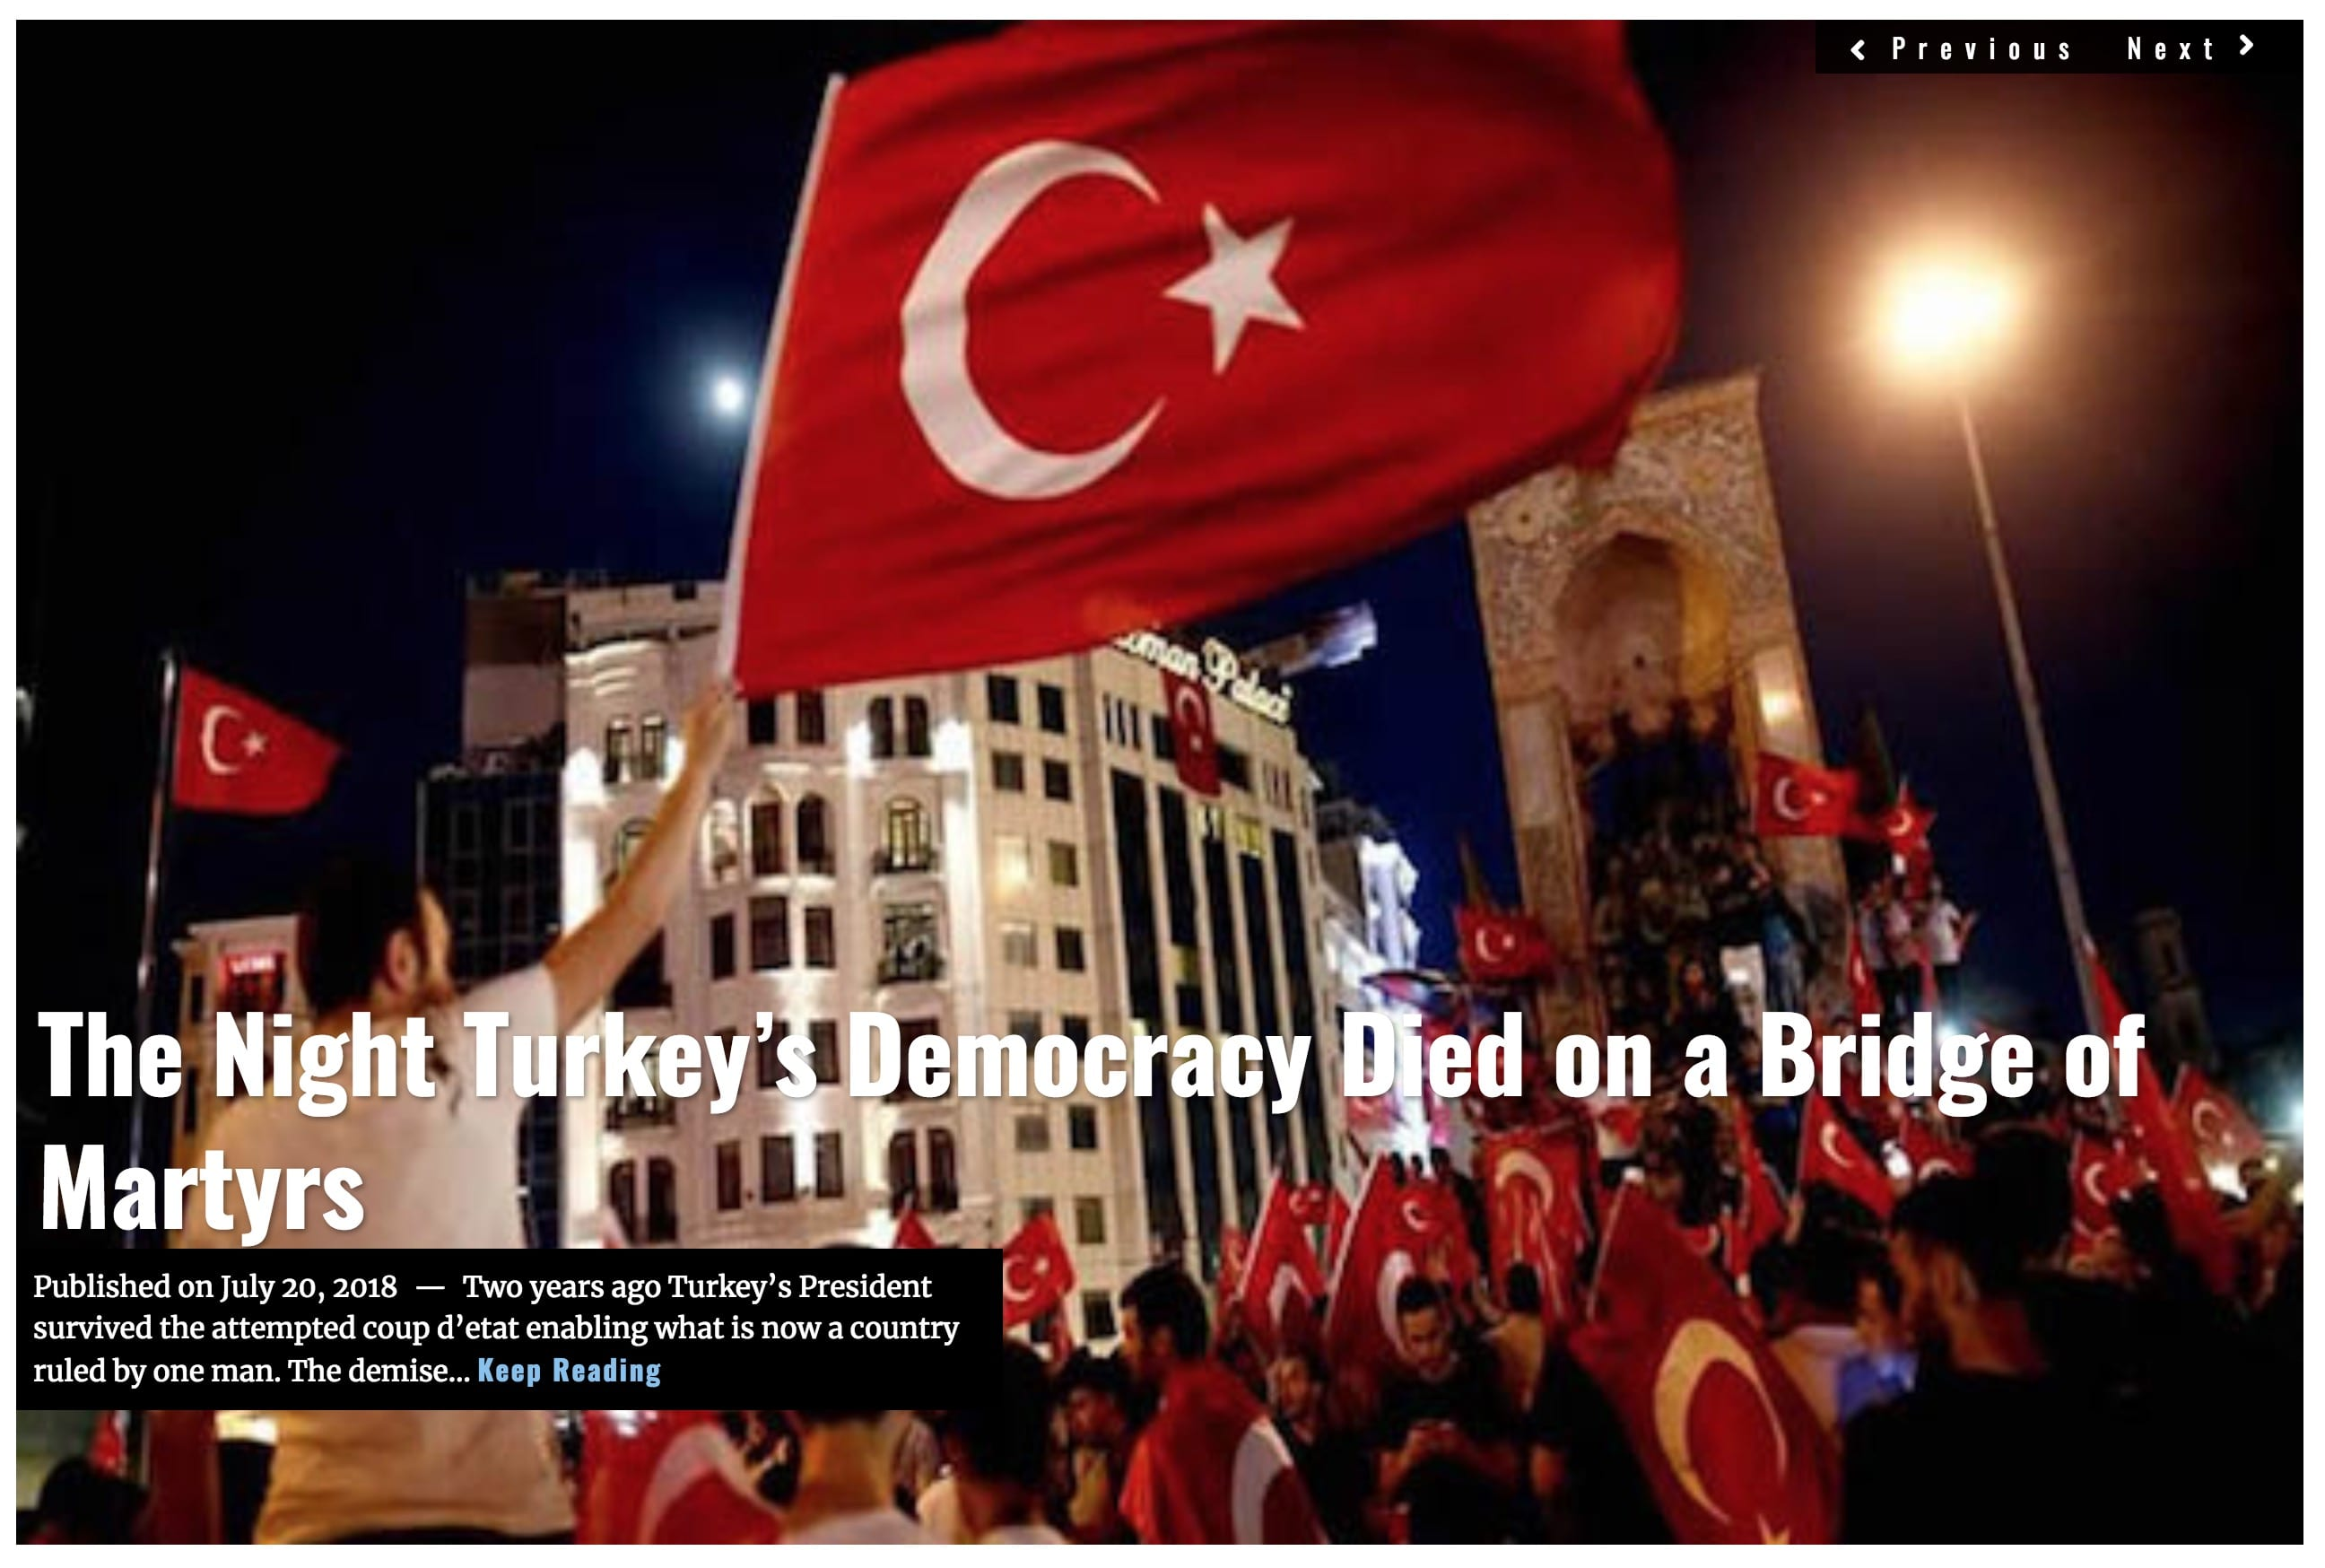 image Lima Charlie News Headline Turkey Bridge of Martyrs JUL 20 2018